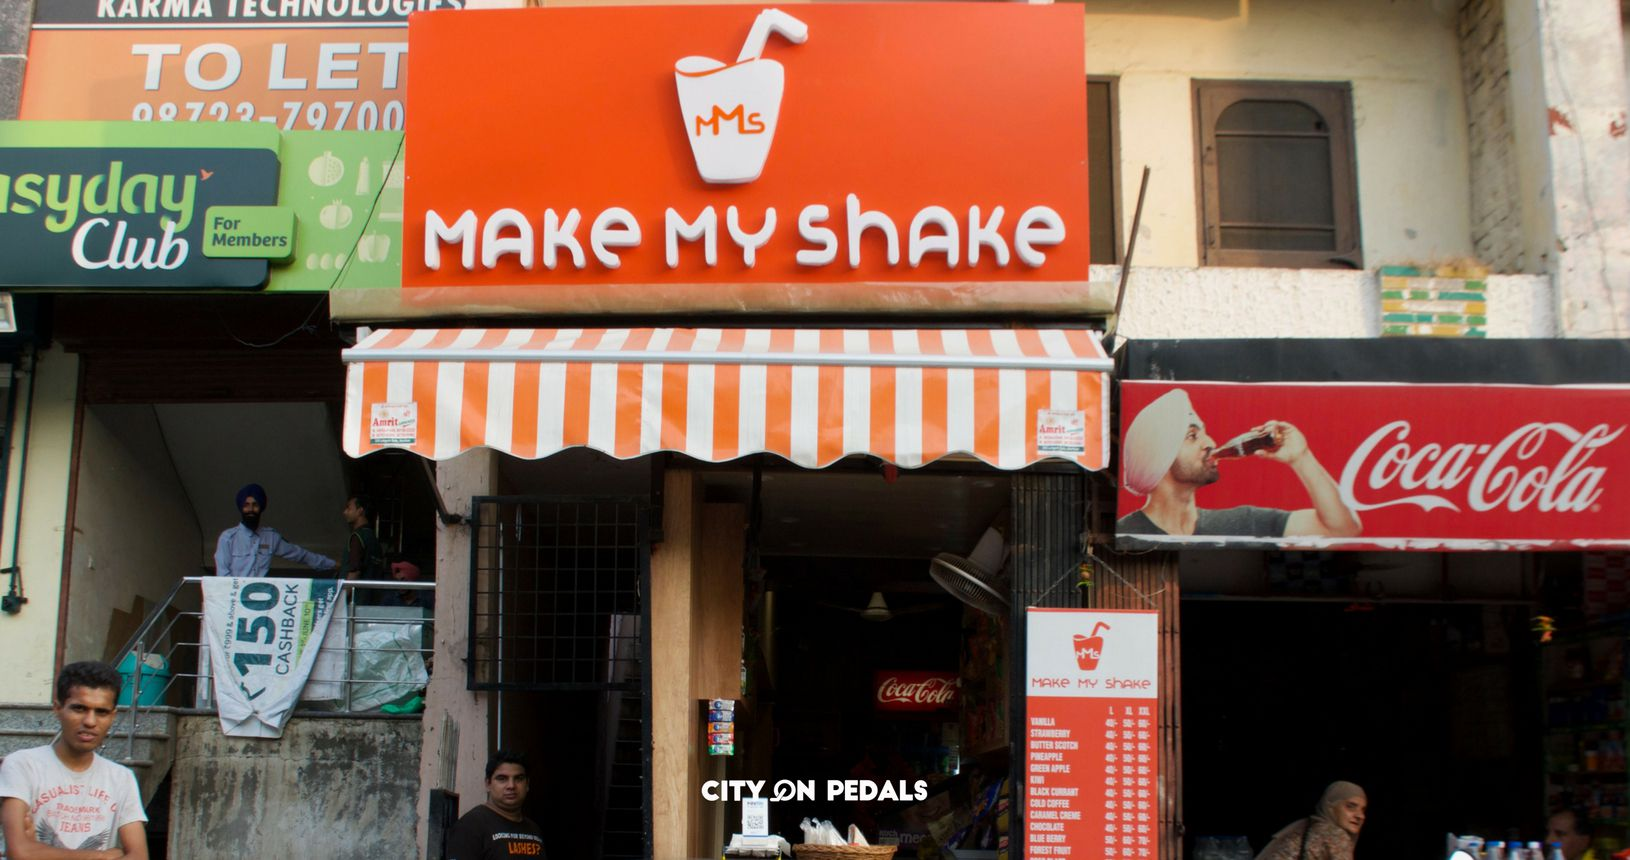 Make My Shake is famous for its flavored milk shakes and fruit beer